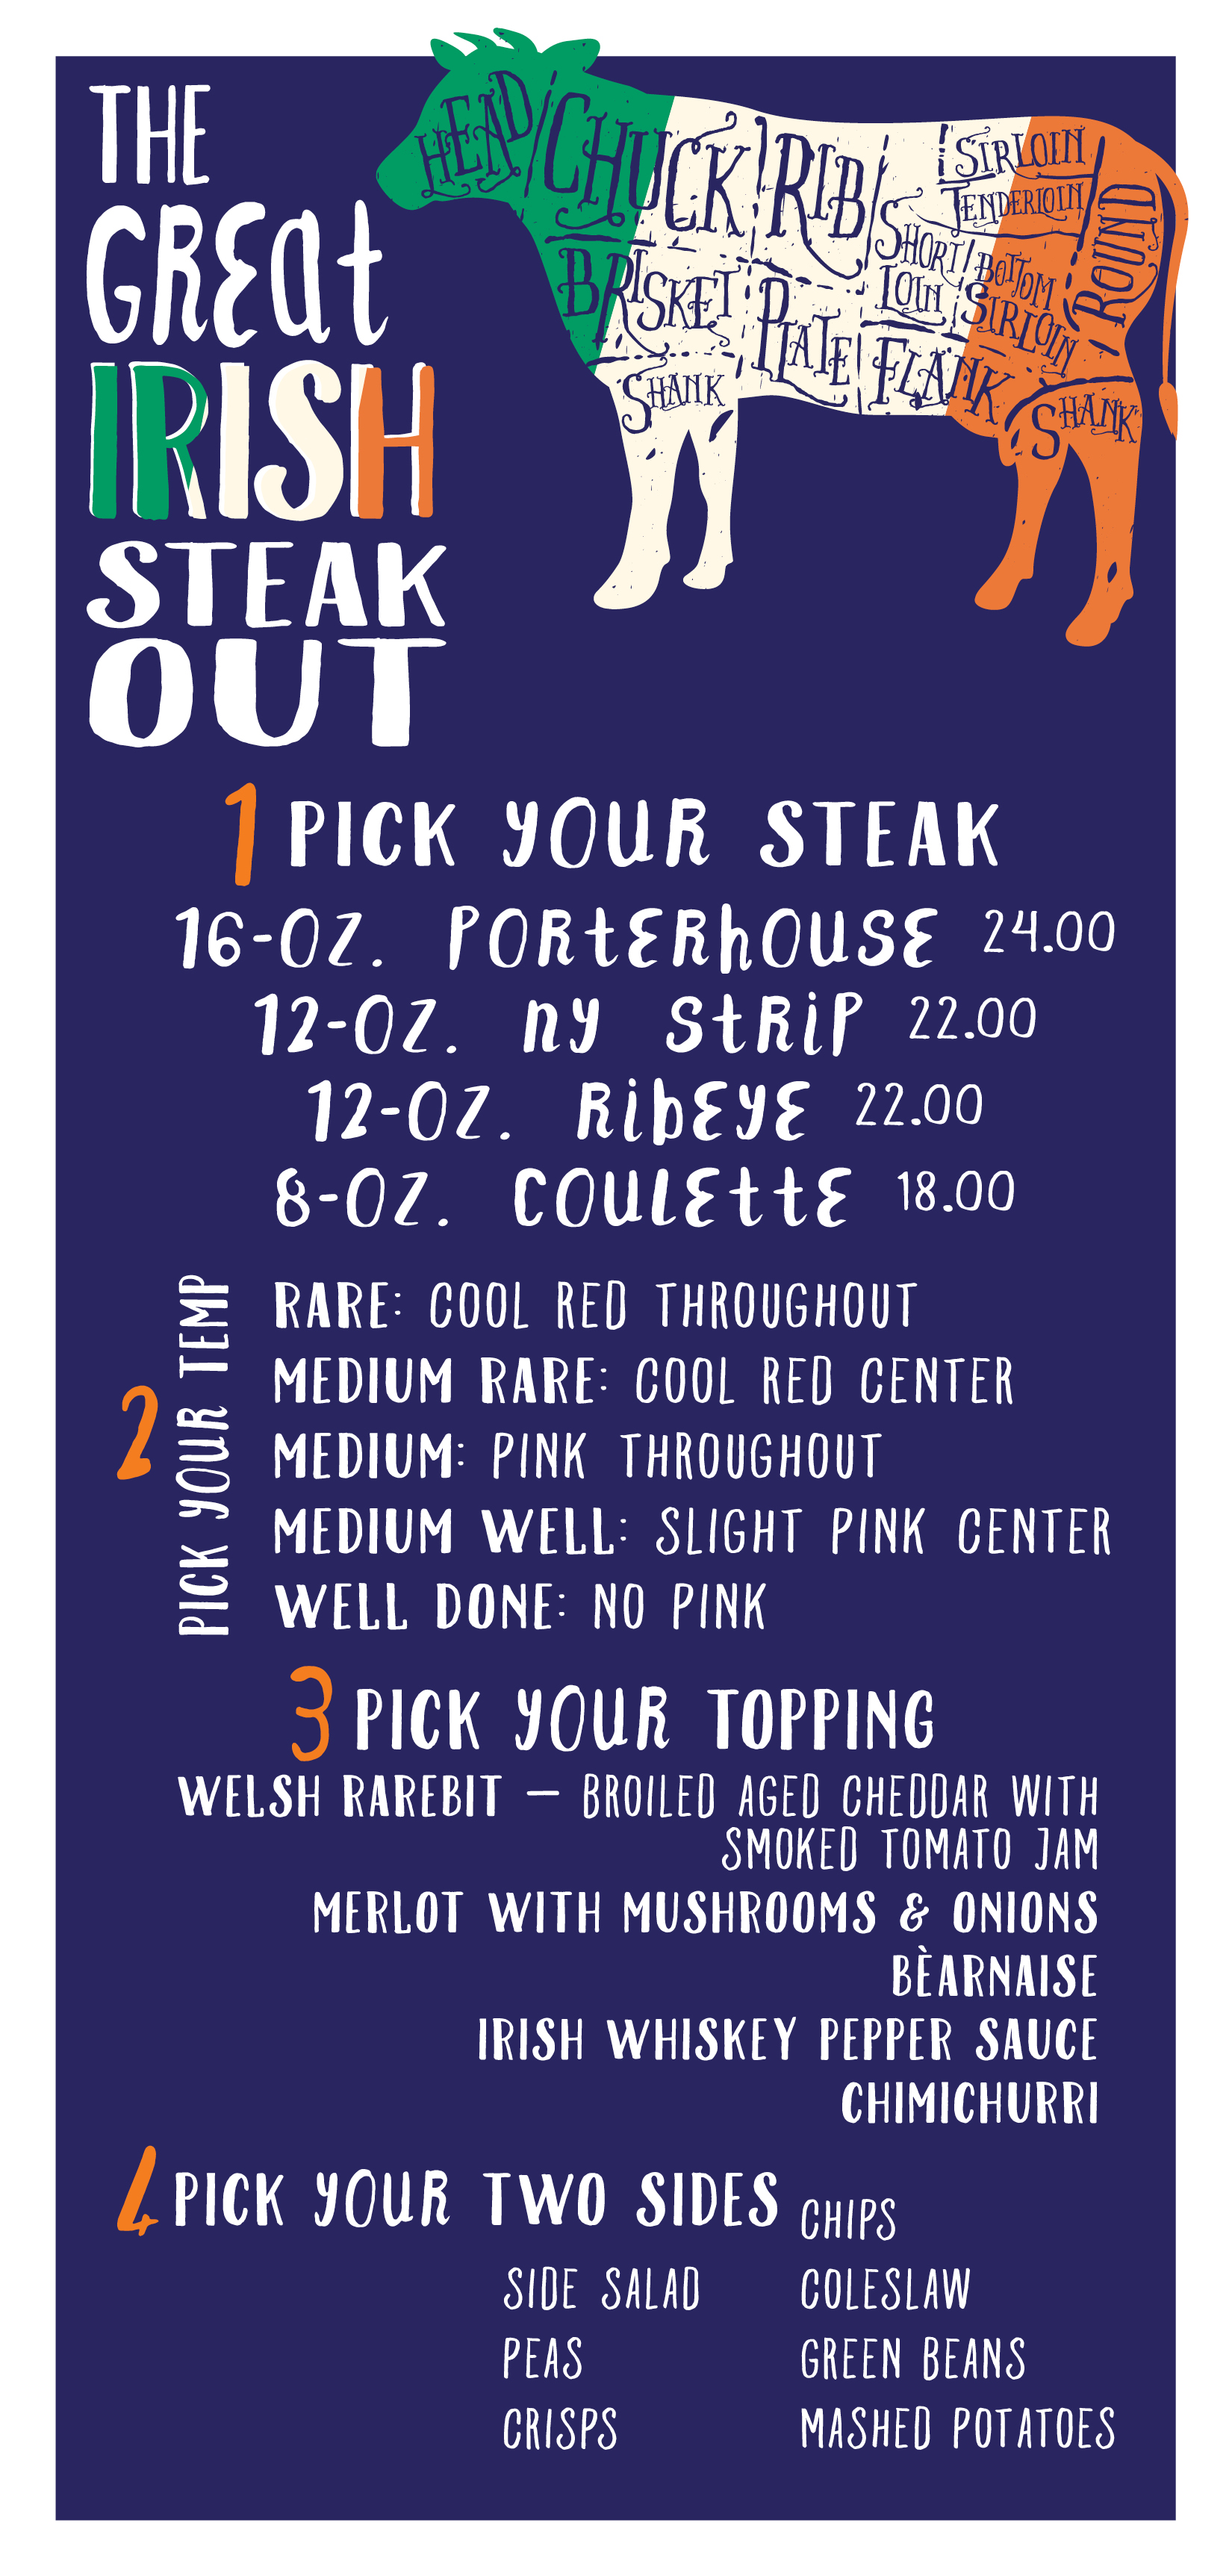 GREAT IRISH STEAK OUT • 5.5 x 11 MENU INSERT  CLIENT: McCARTHY'S RED STAG PUB AND WHISKEY BAR BRIEF: Create materials to promote the a la carte steak menu option during the month of September. WORK: Adobe Illustrator + InDesign